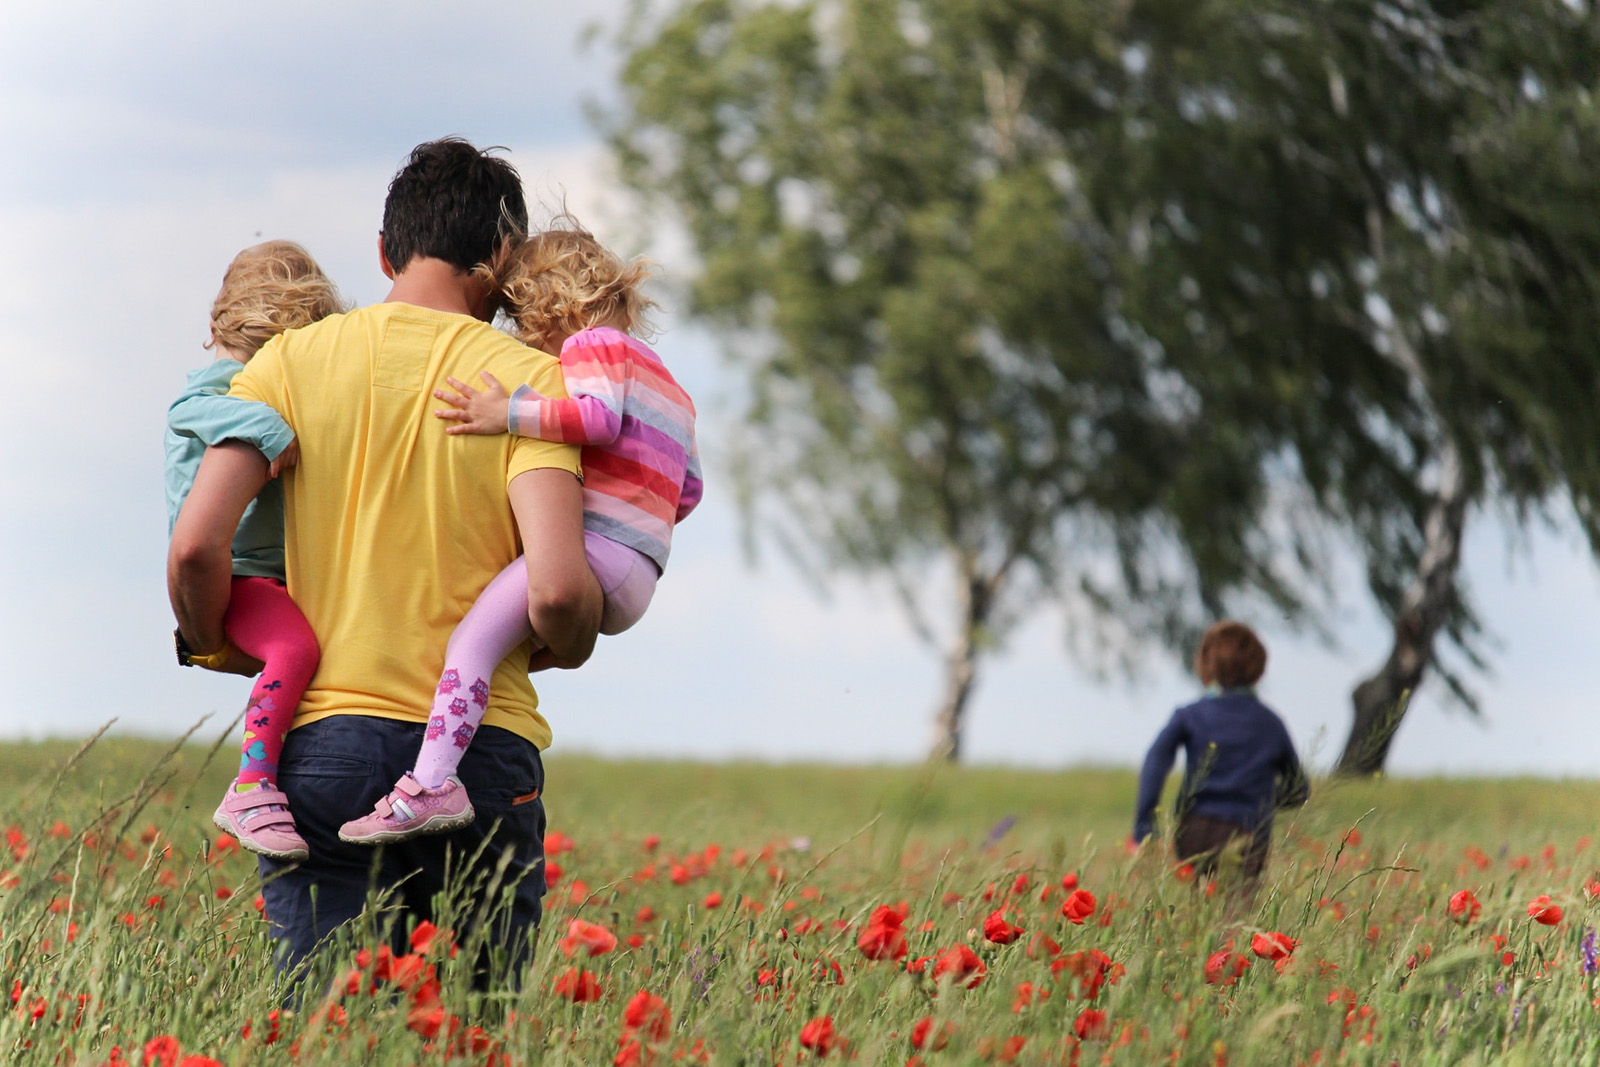 A father carrying two young children and one young child running ahead in a field with trees.